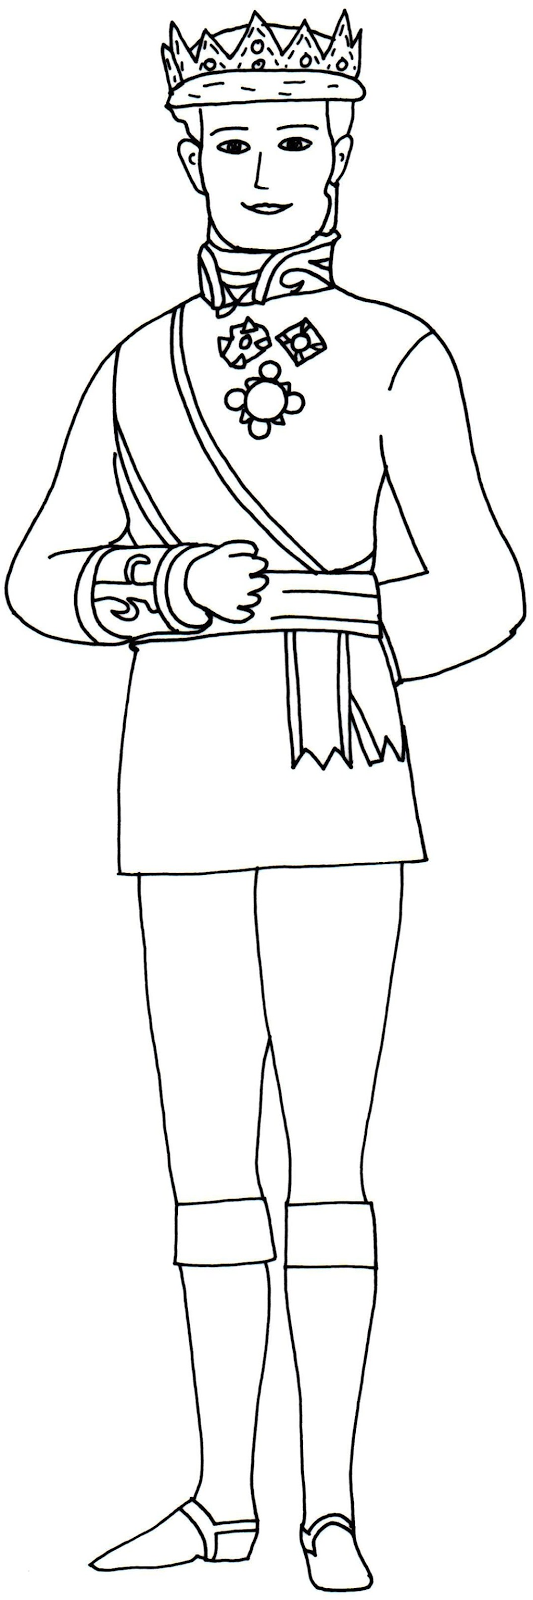 Sofia The First Coloring Pages King Rolland Ii Sofia The First